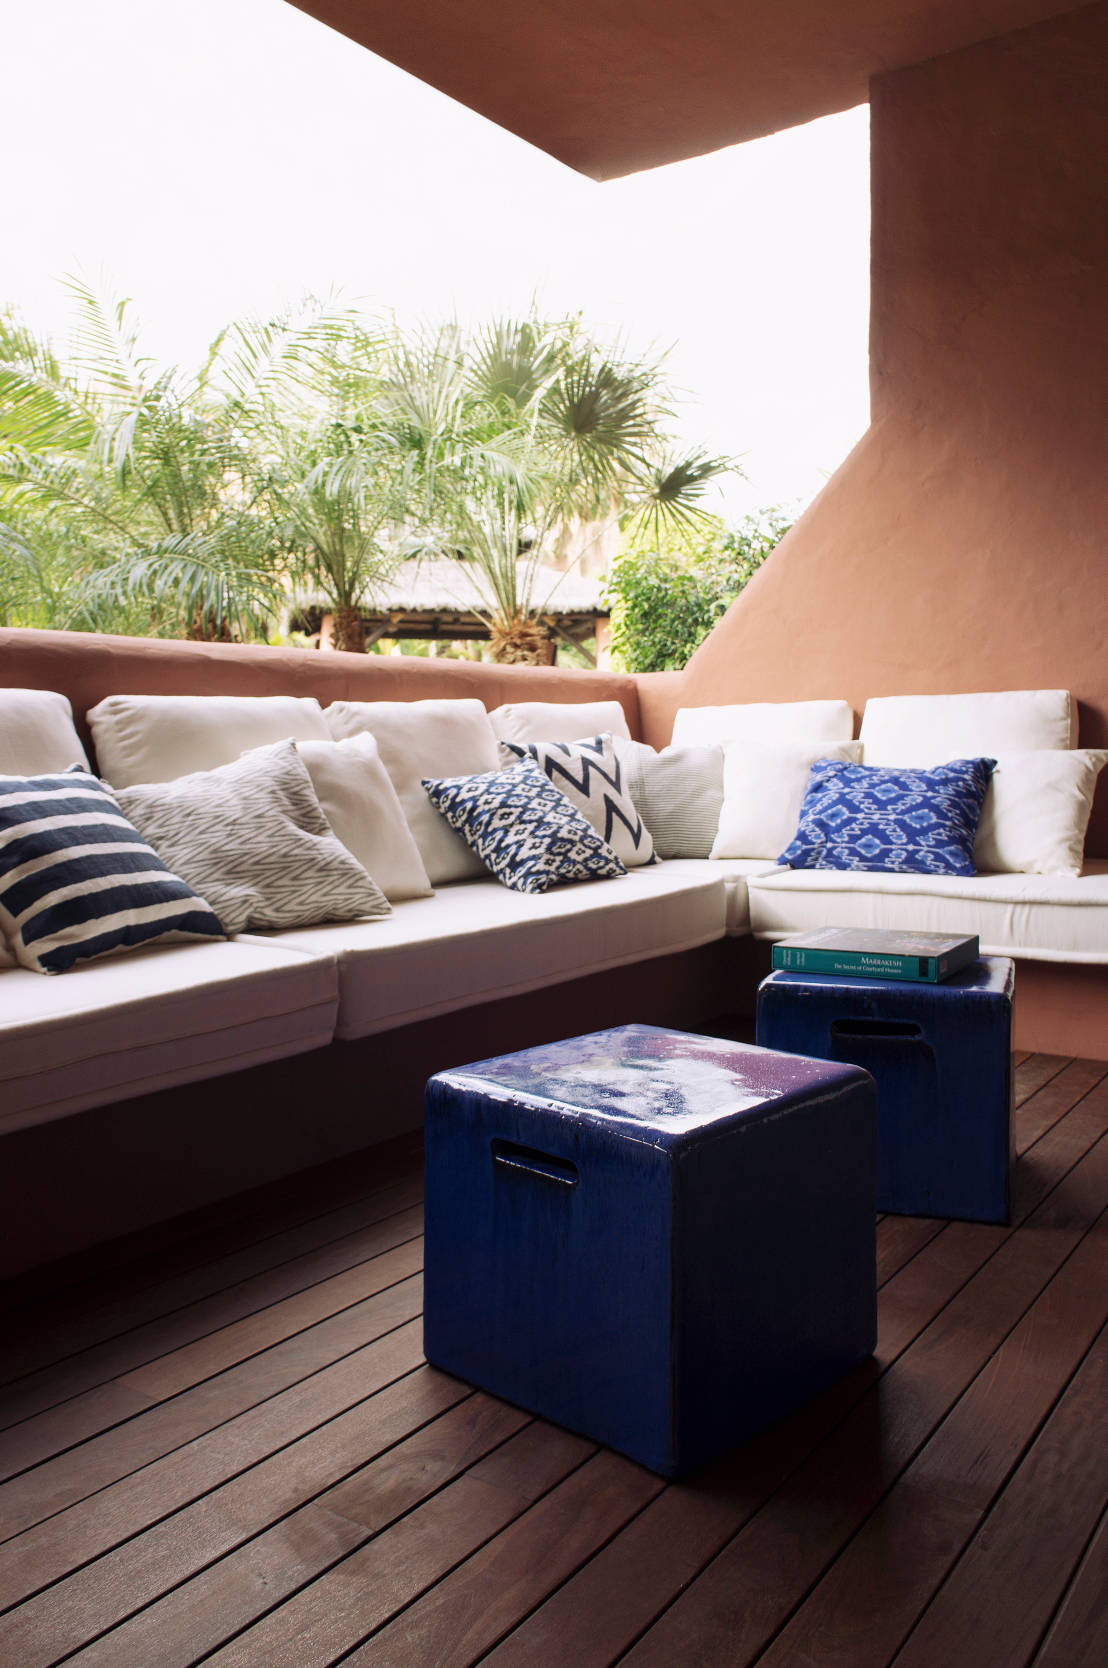 5 ideas para crear un espacio chill out en el jard n o la - Chill out jardin ...